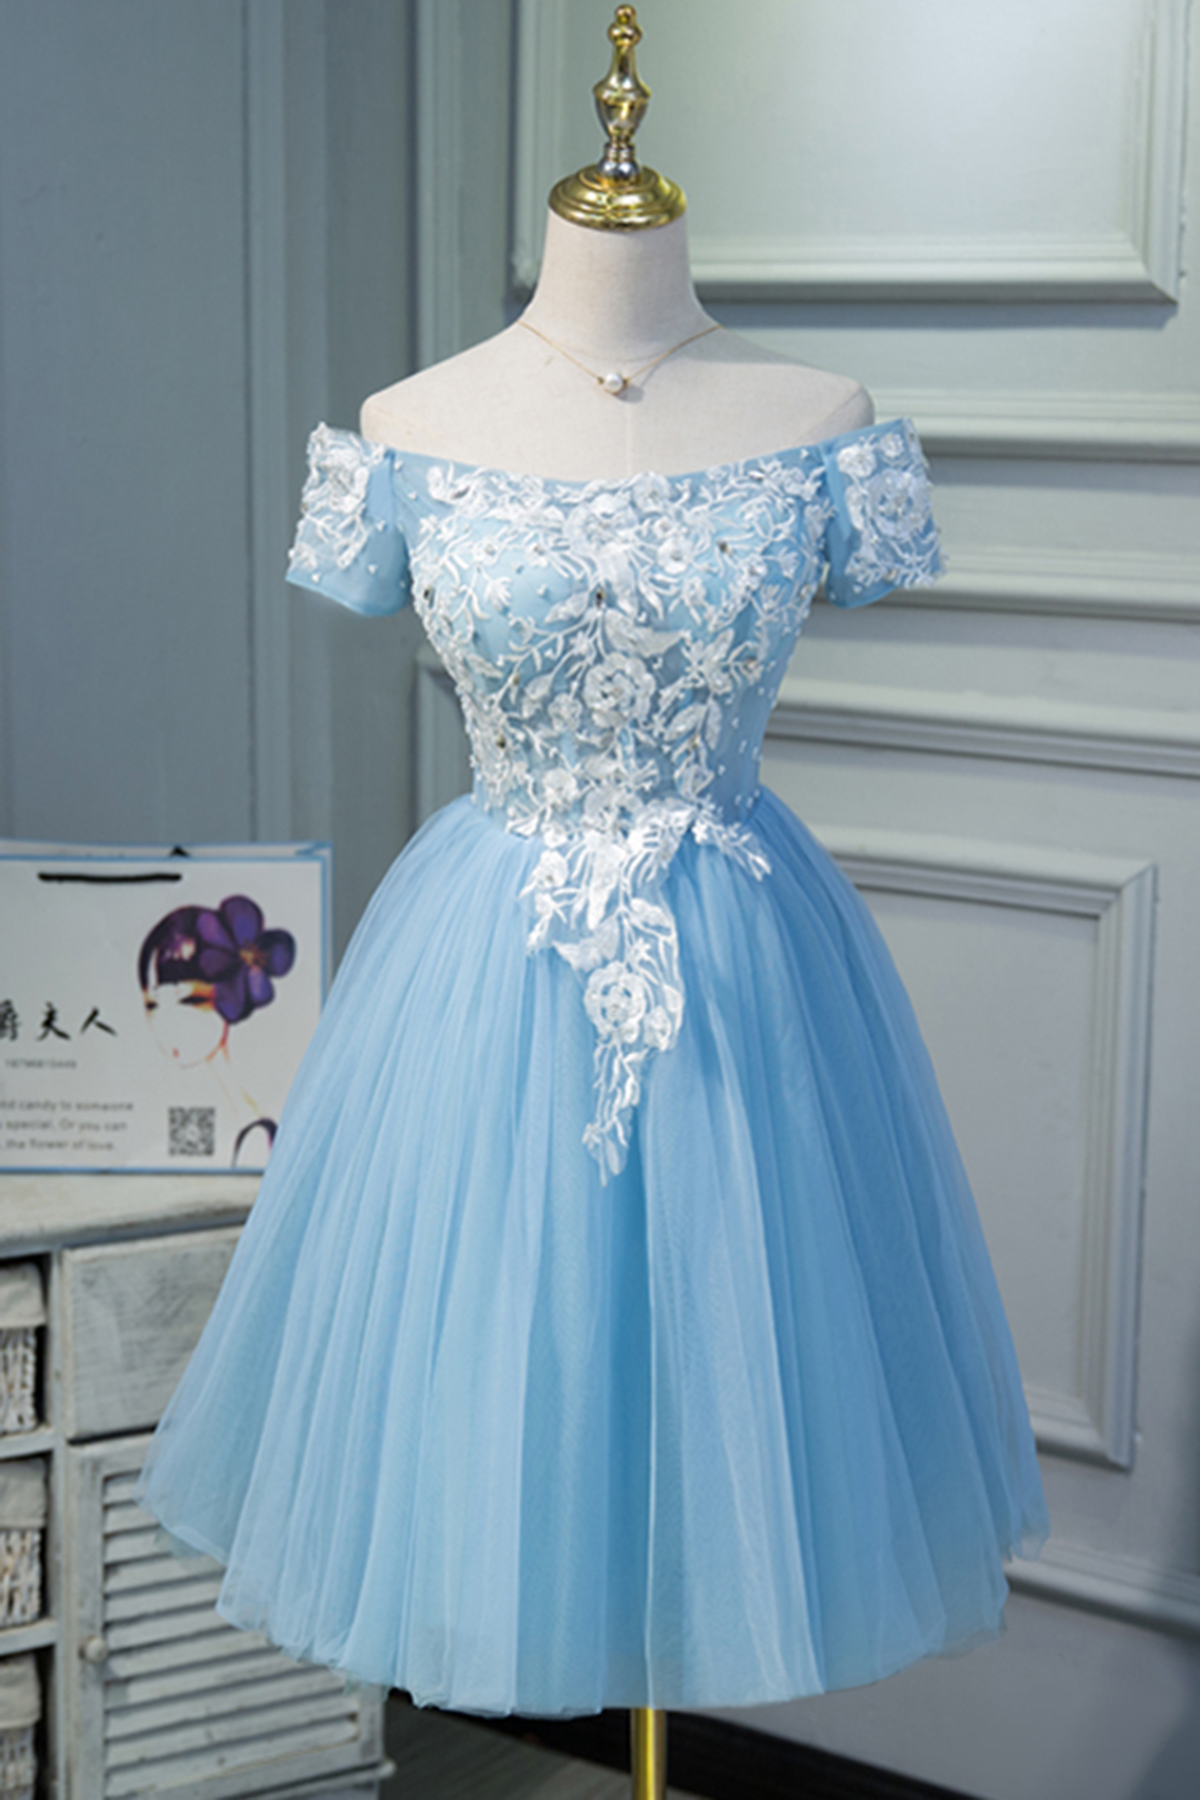 6832bddd570f Cute blue tulle off shoulder knee length homecoming dress with sleeves, lace  short party dress